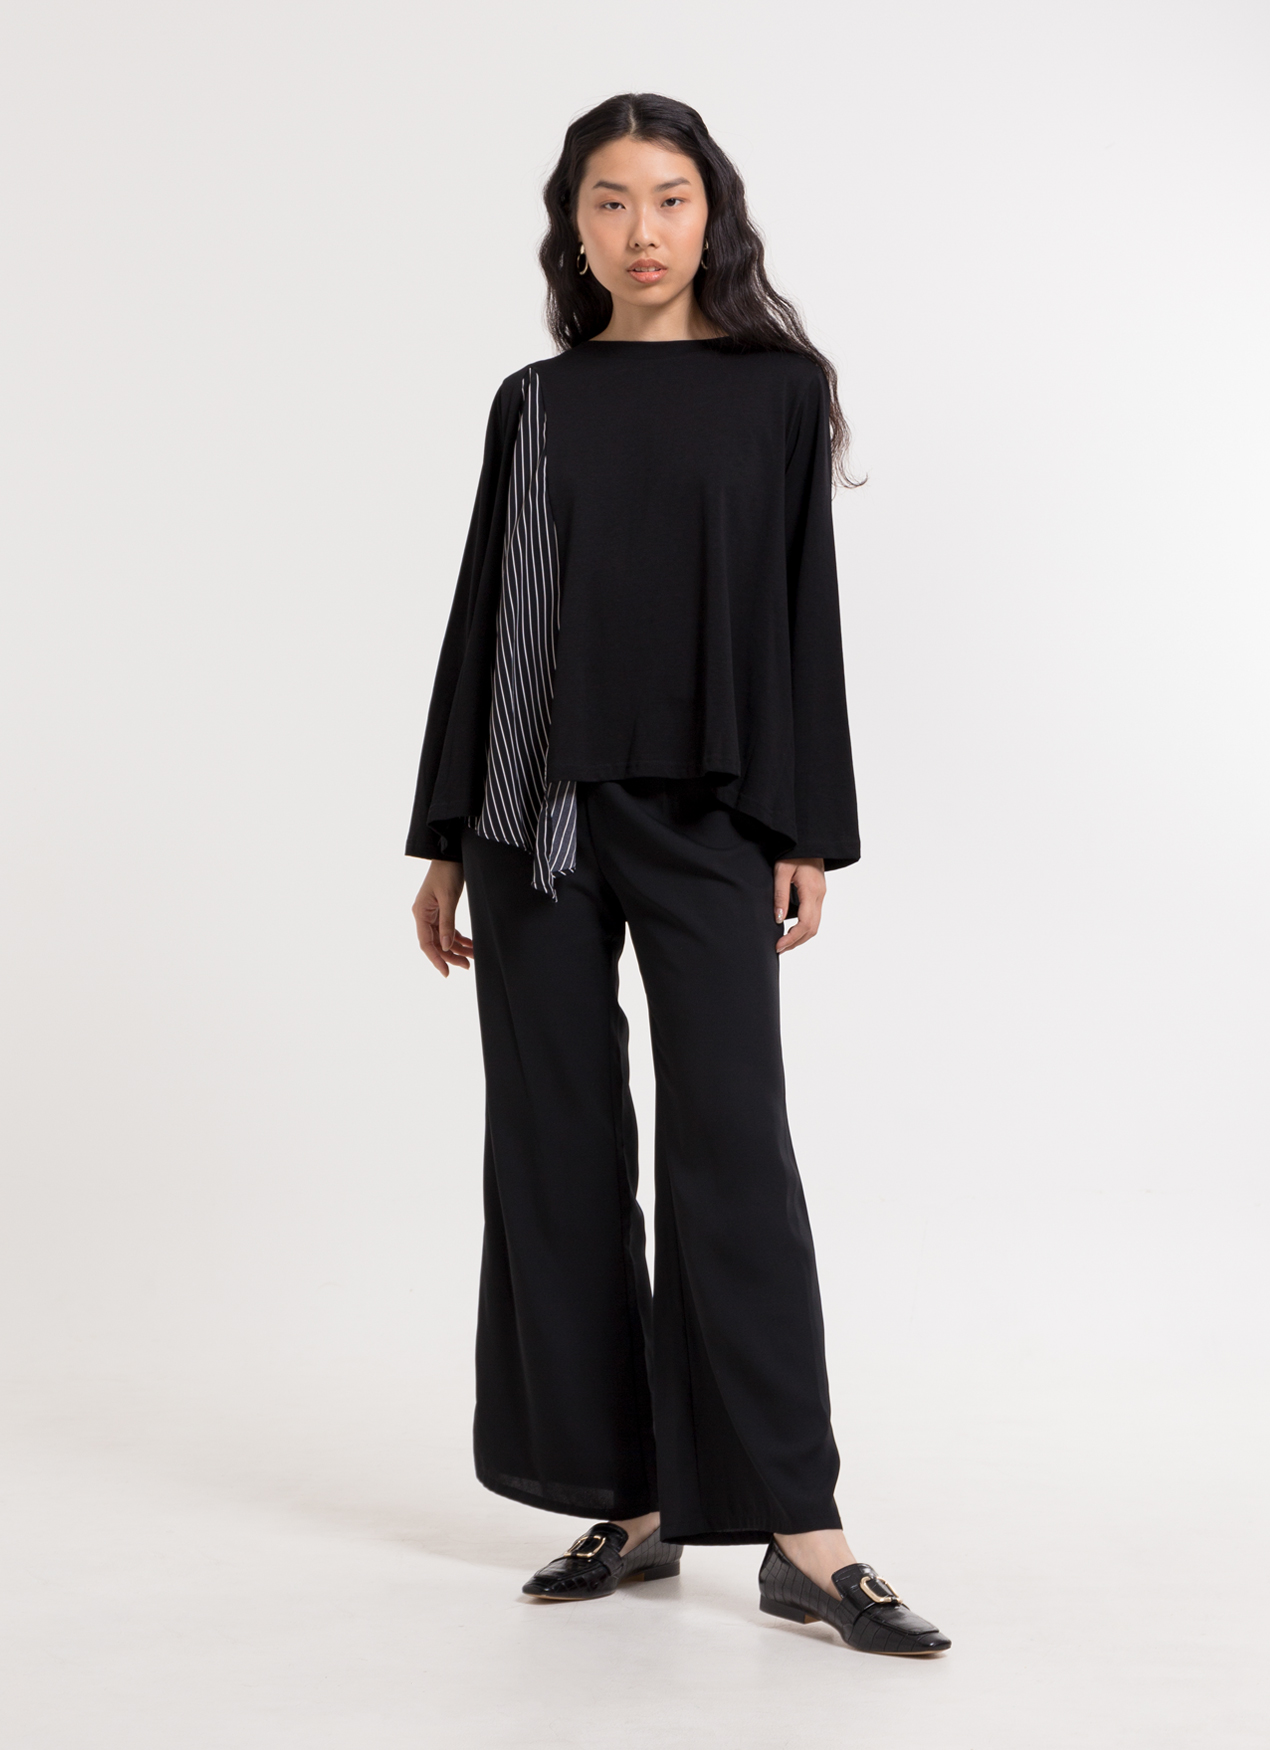 BOWN Dallas Top - Black